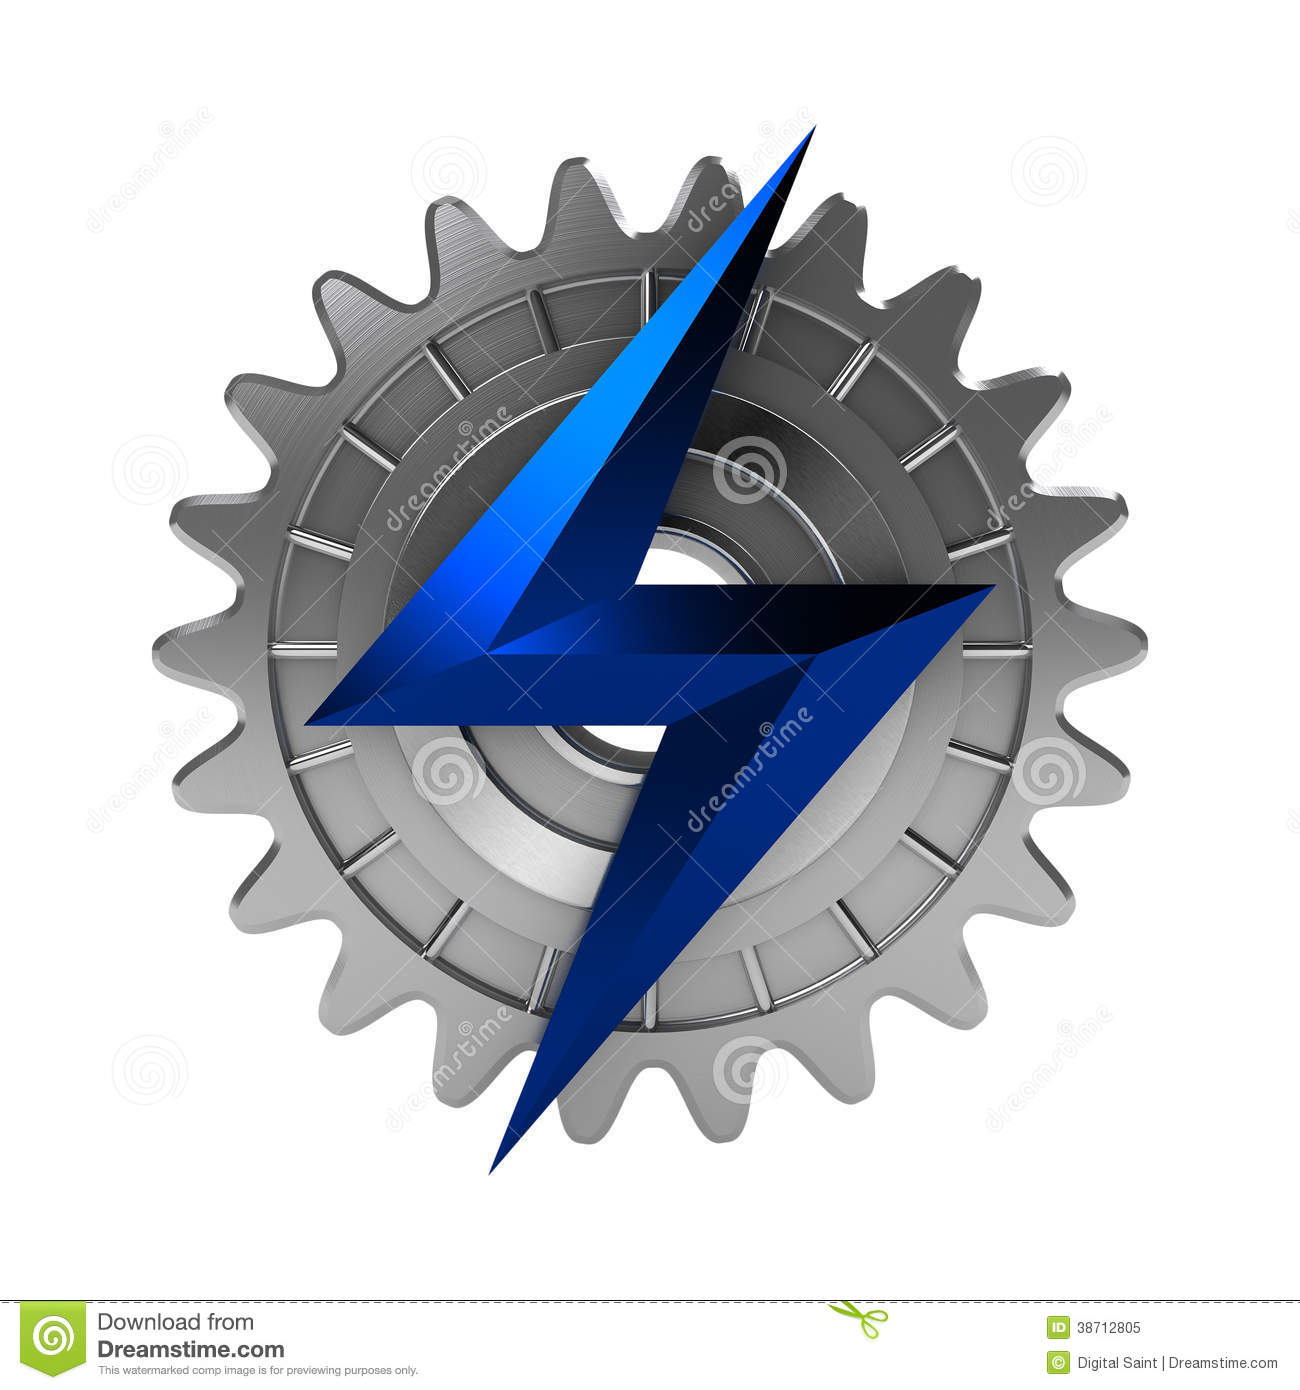 ElectroMechanical Icon Royalty Free Stock Photo - Image: 38712805